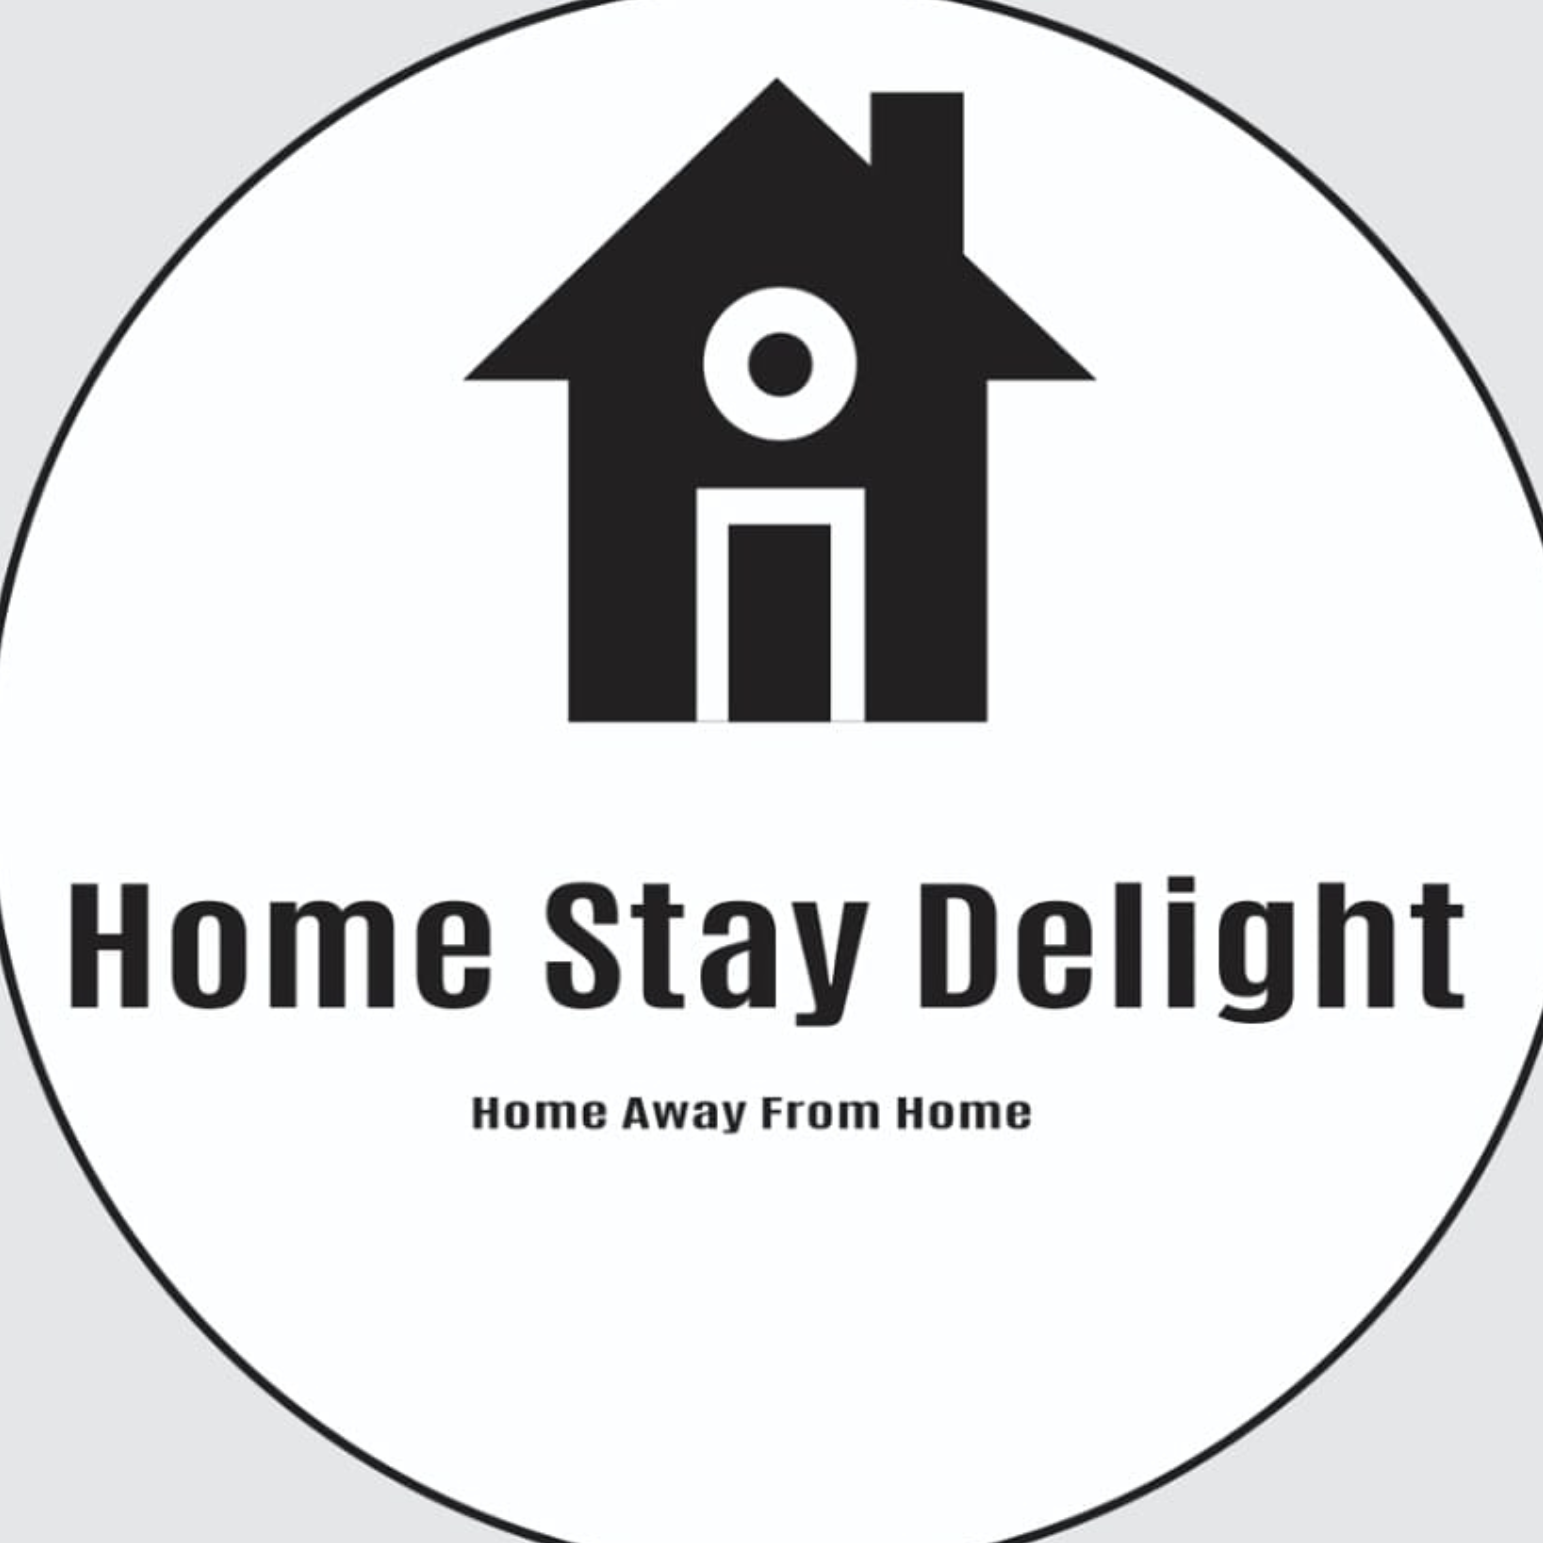 Home Stay Delight - Coliving Company